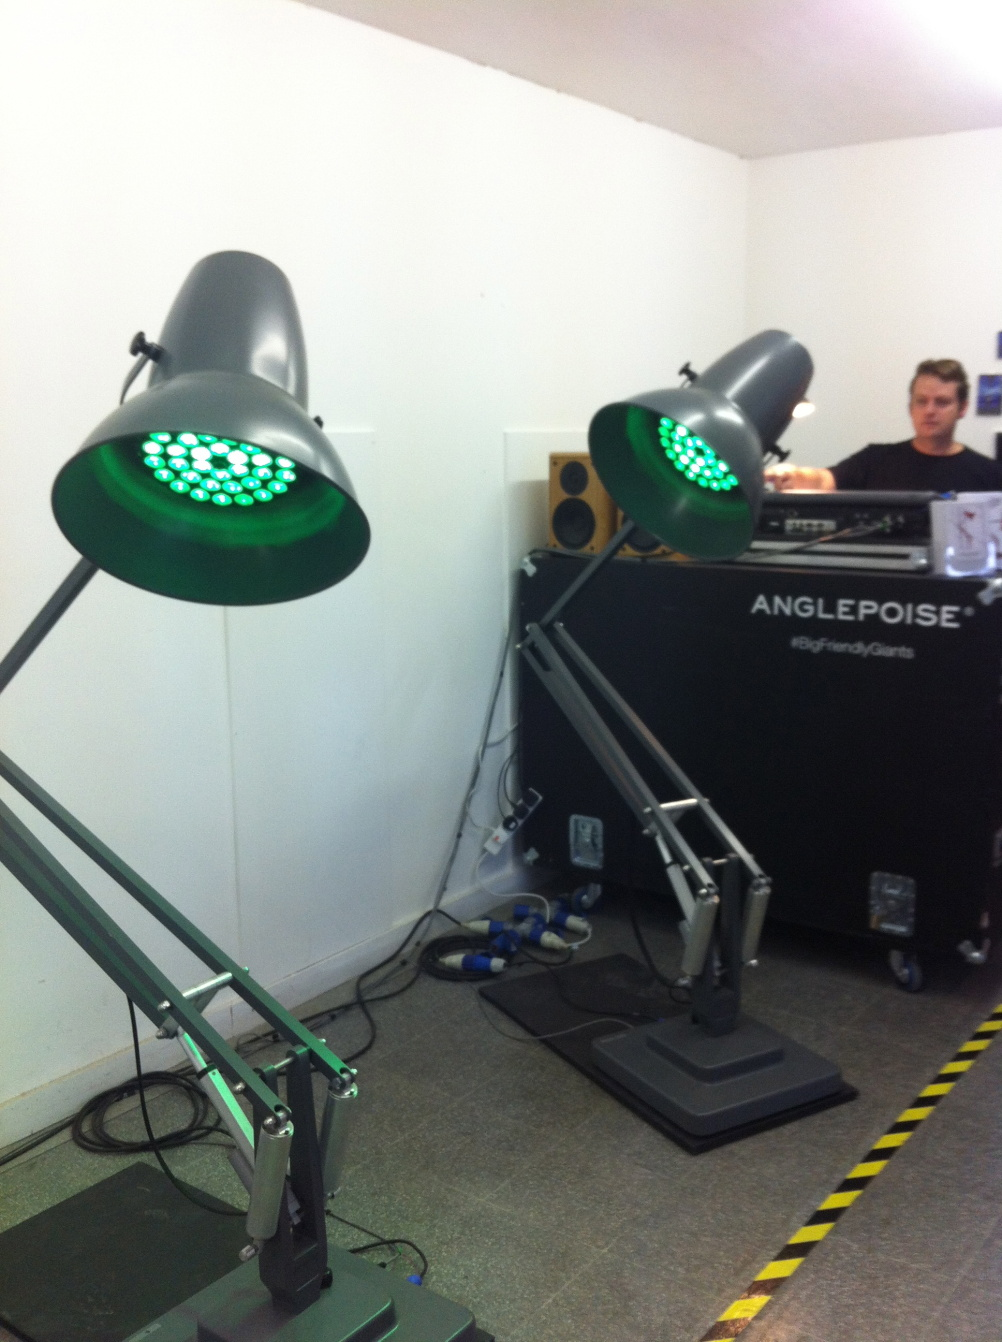 Dancing Anglepoise lamps